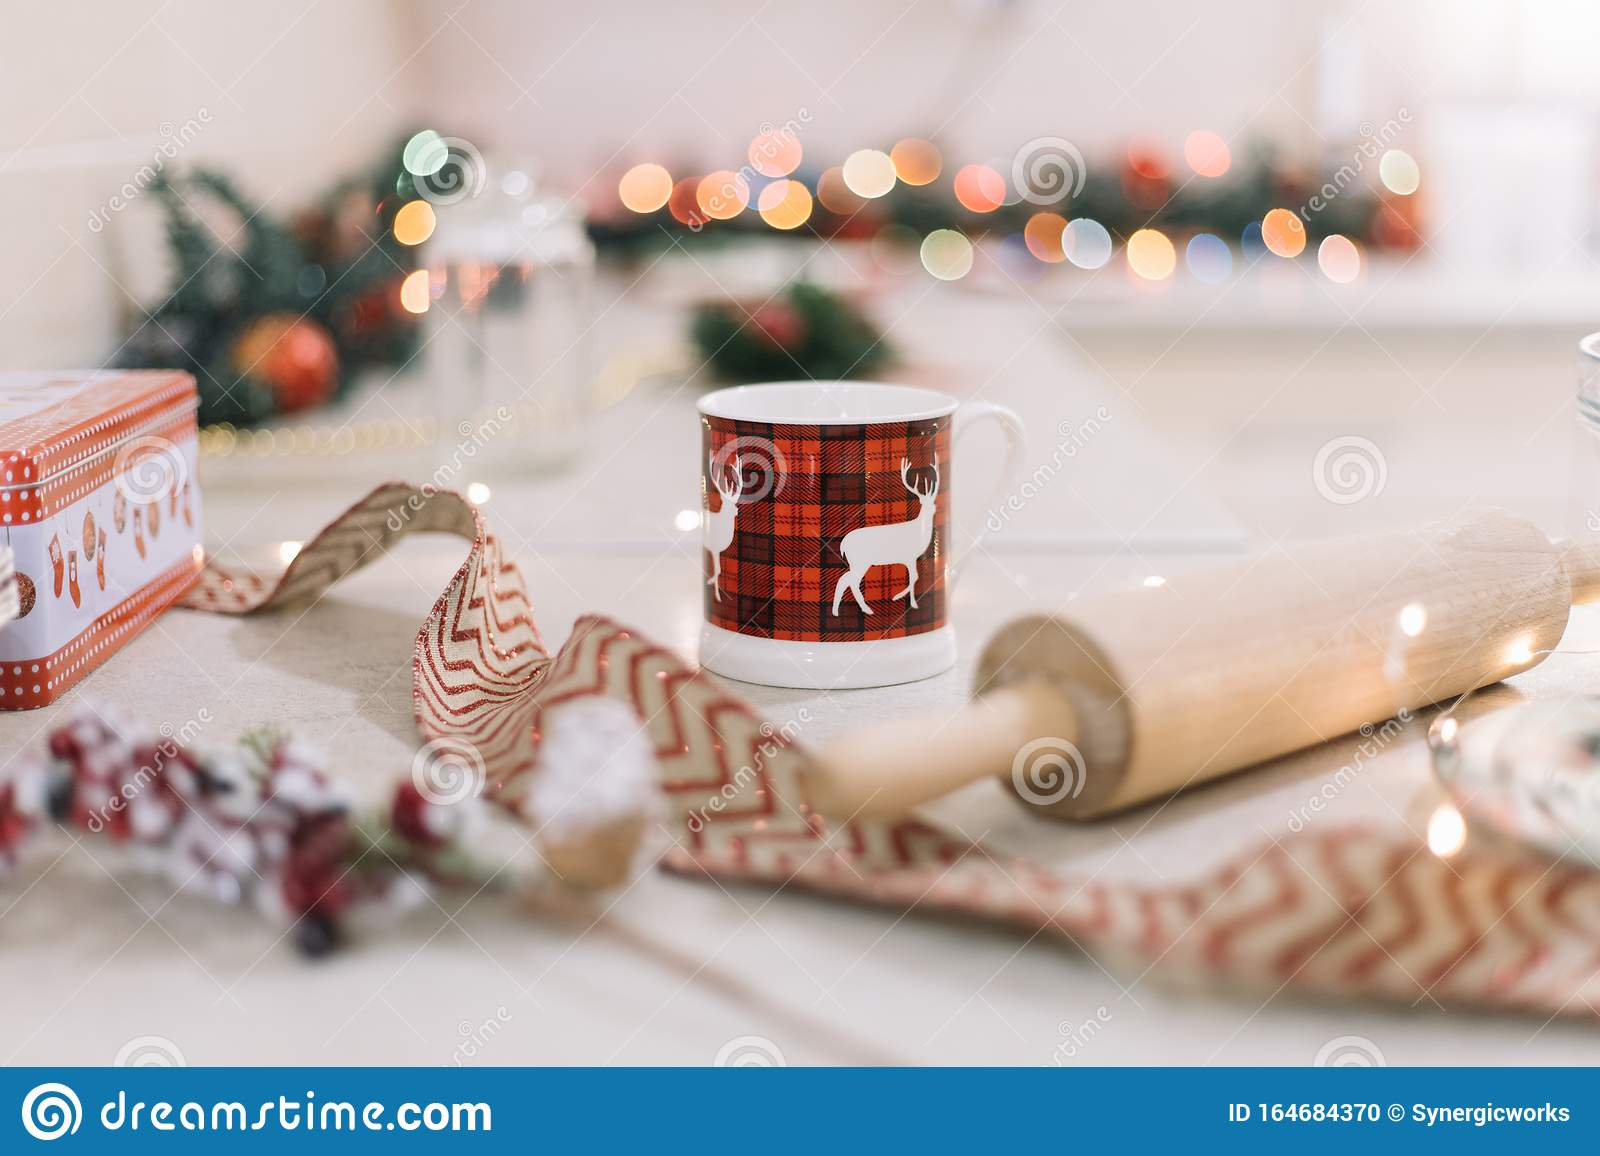 Christmas Mug On Kitchen Counter With Rolling Pin Stock Photo Image Of Cook Happy 164684370